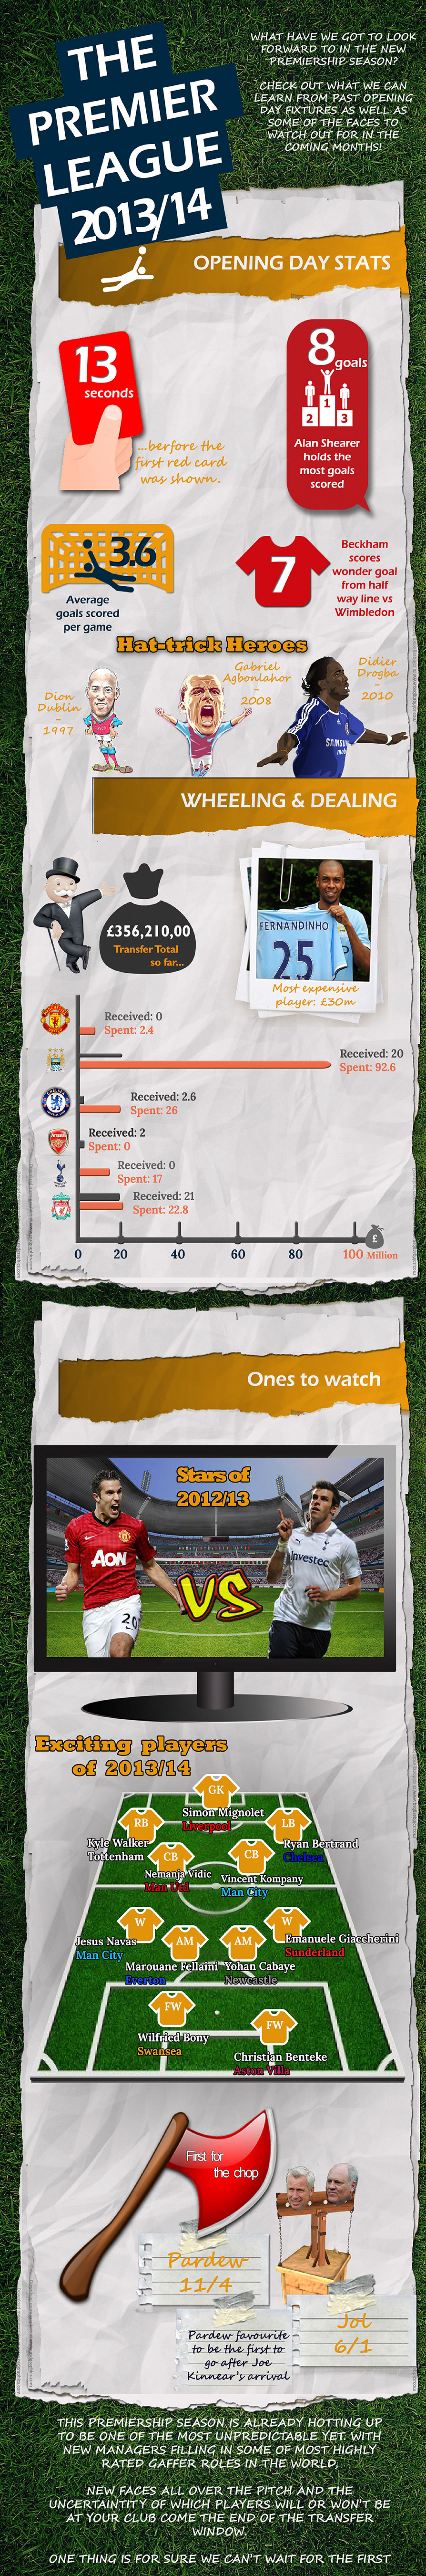 Barclays Premier League 2013/14 Opening Day Statistics Infographic